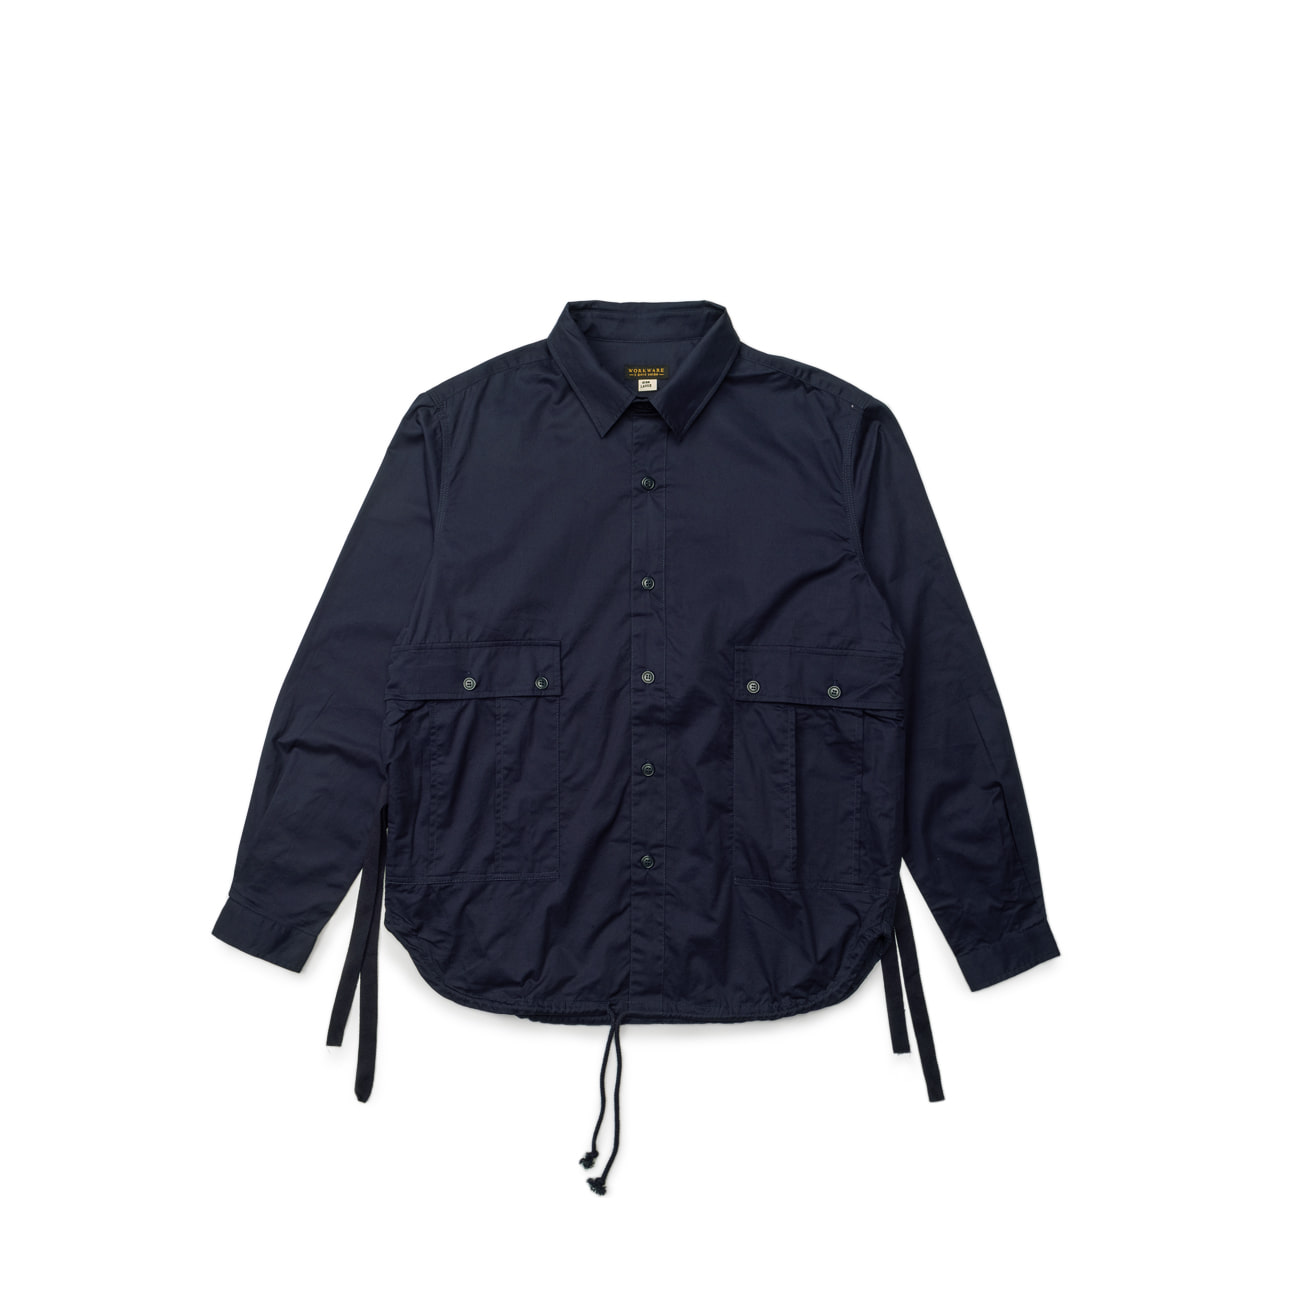 M51 Shirt Light